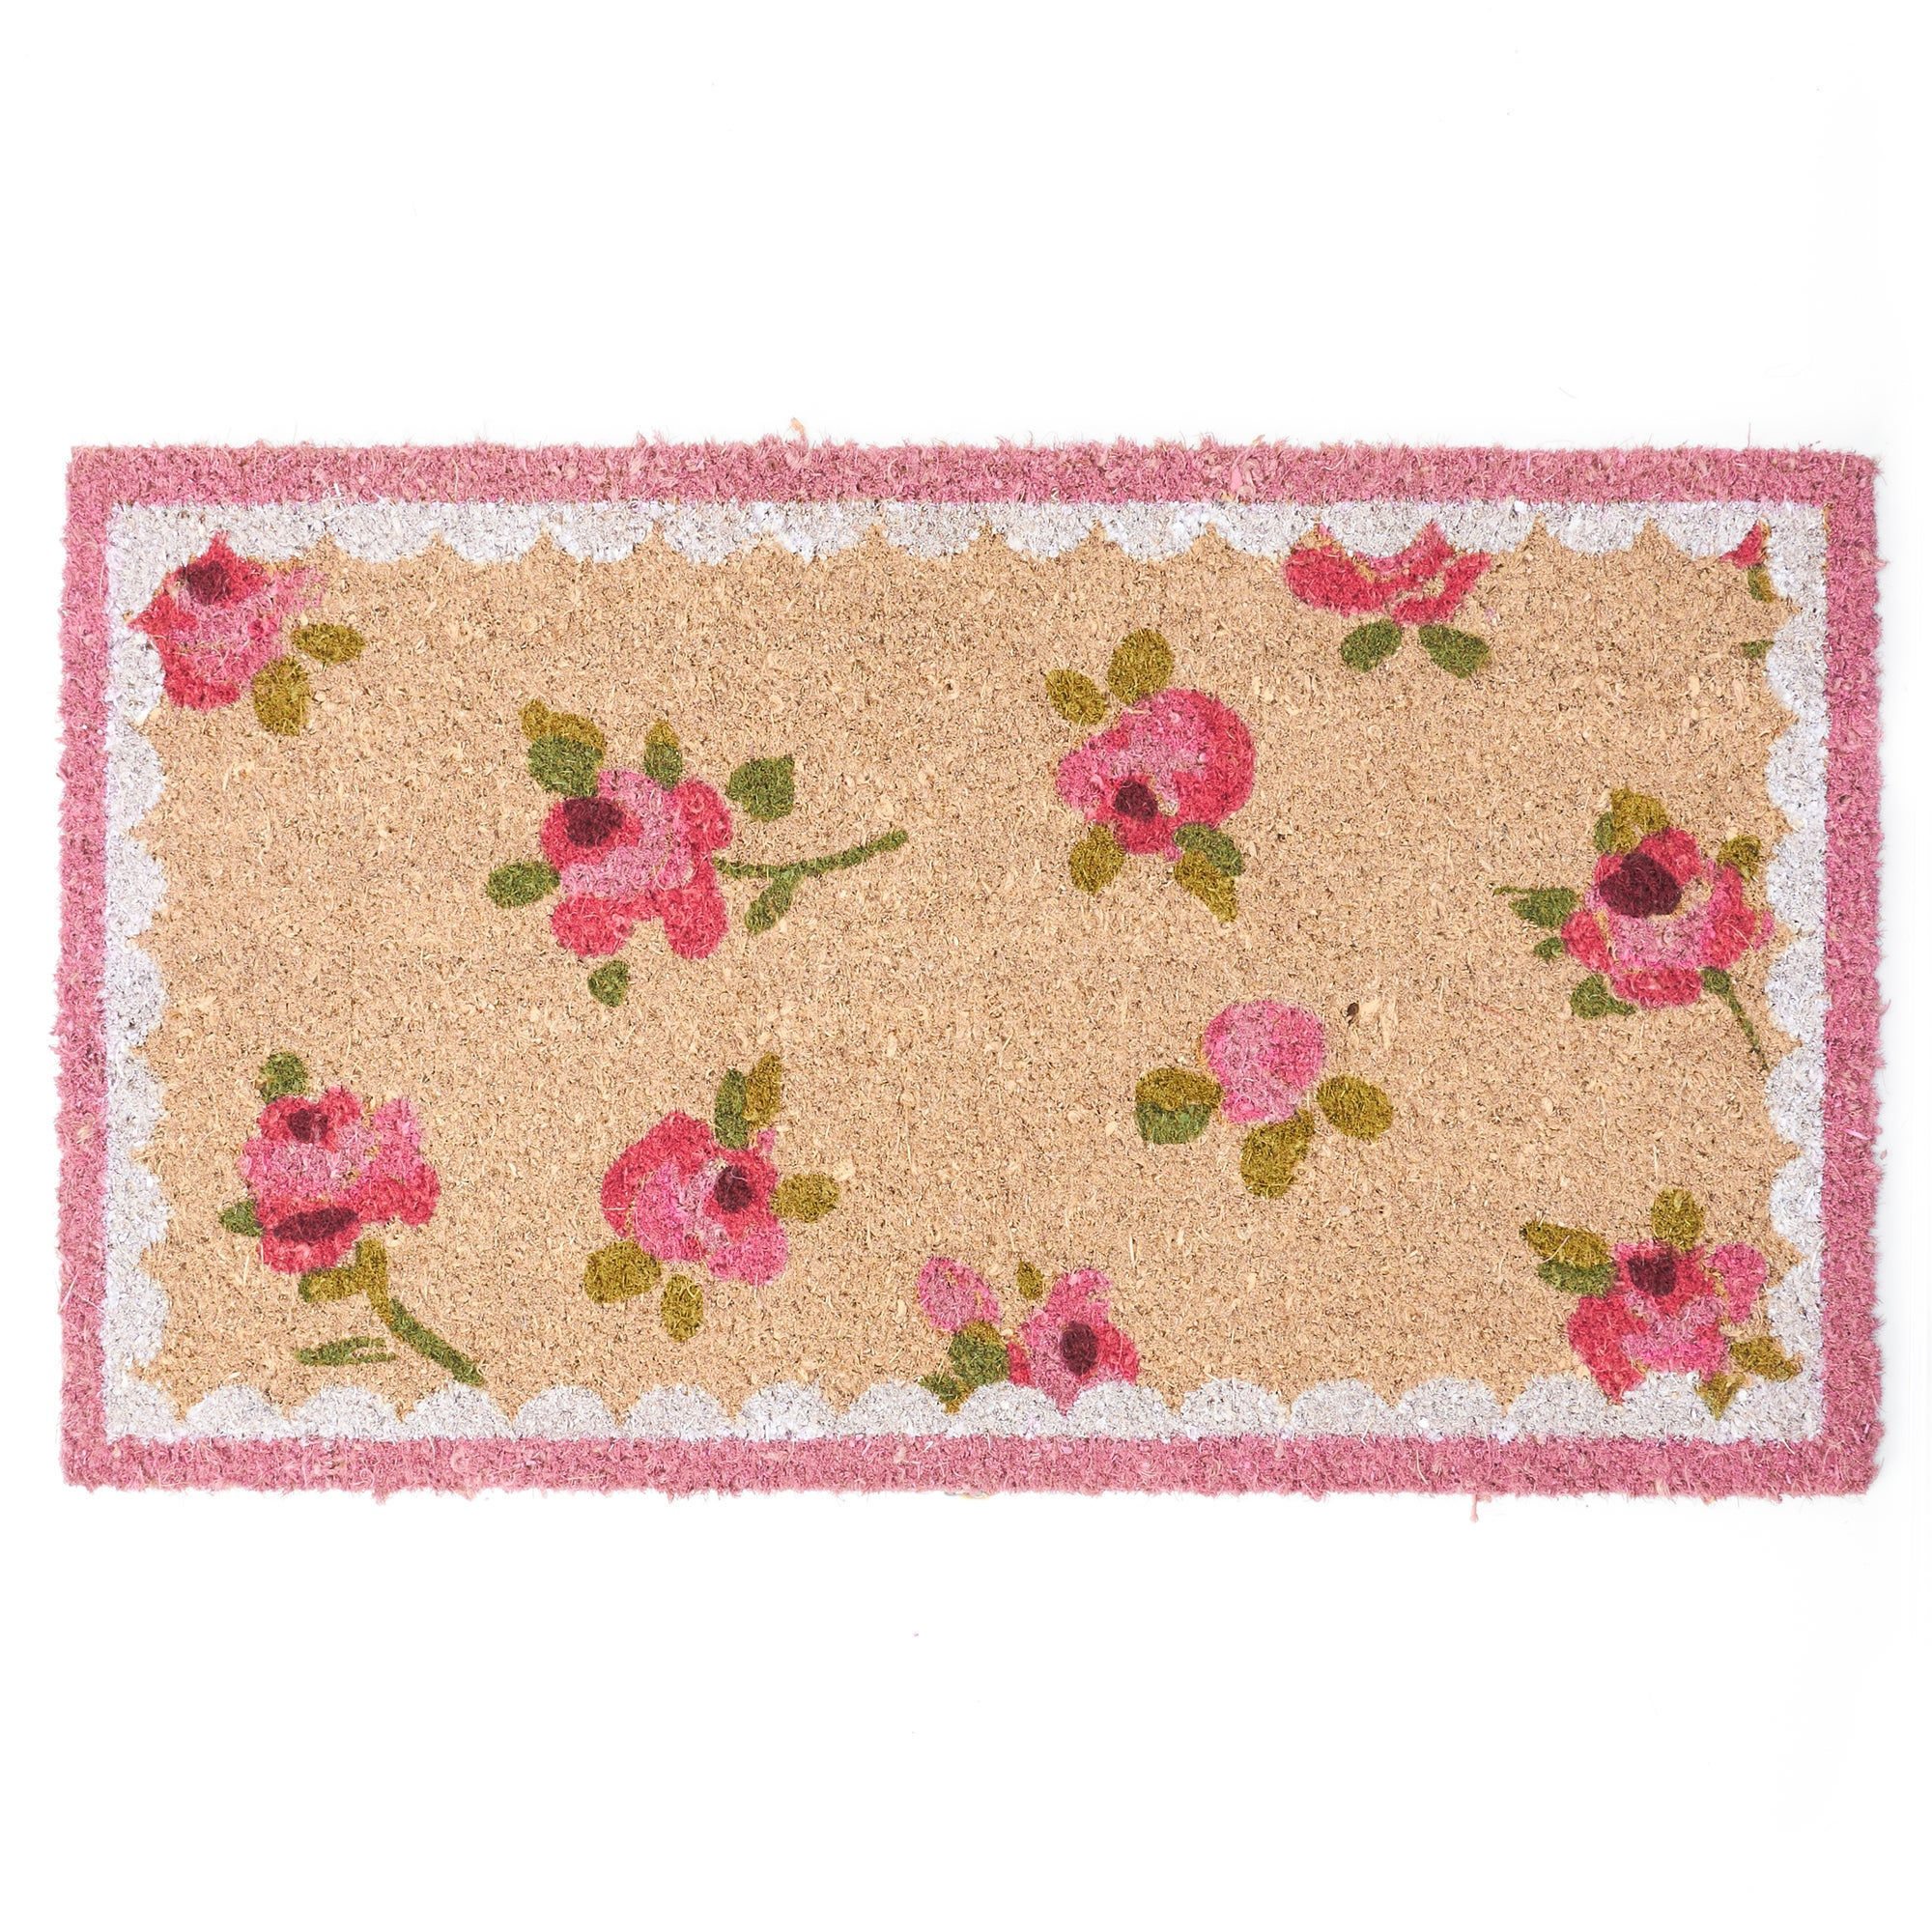 Rose and Ellis Allexton Collection Rosebud Coir Doormat